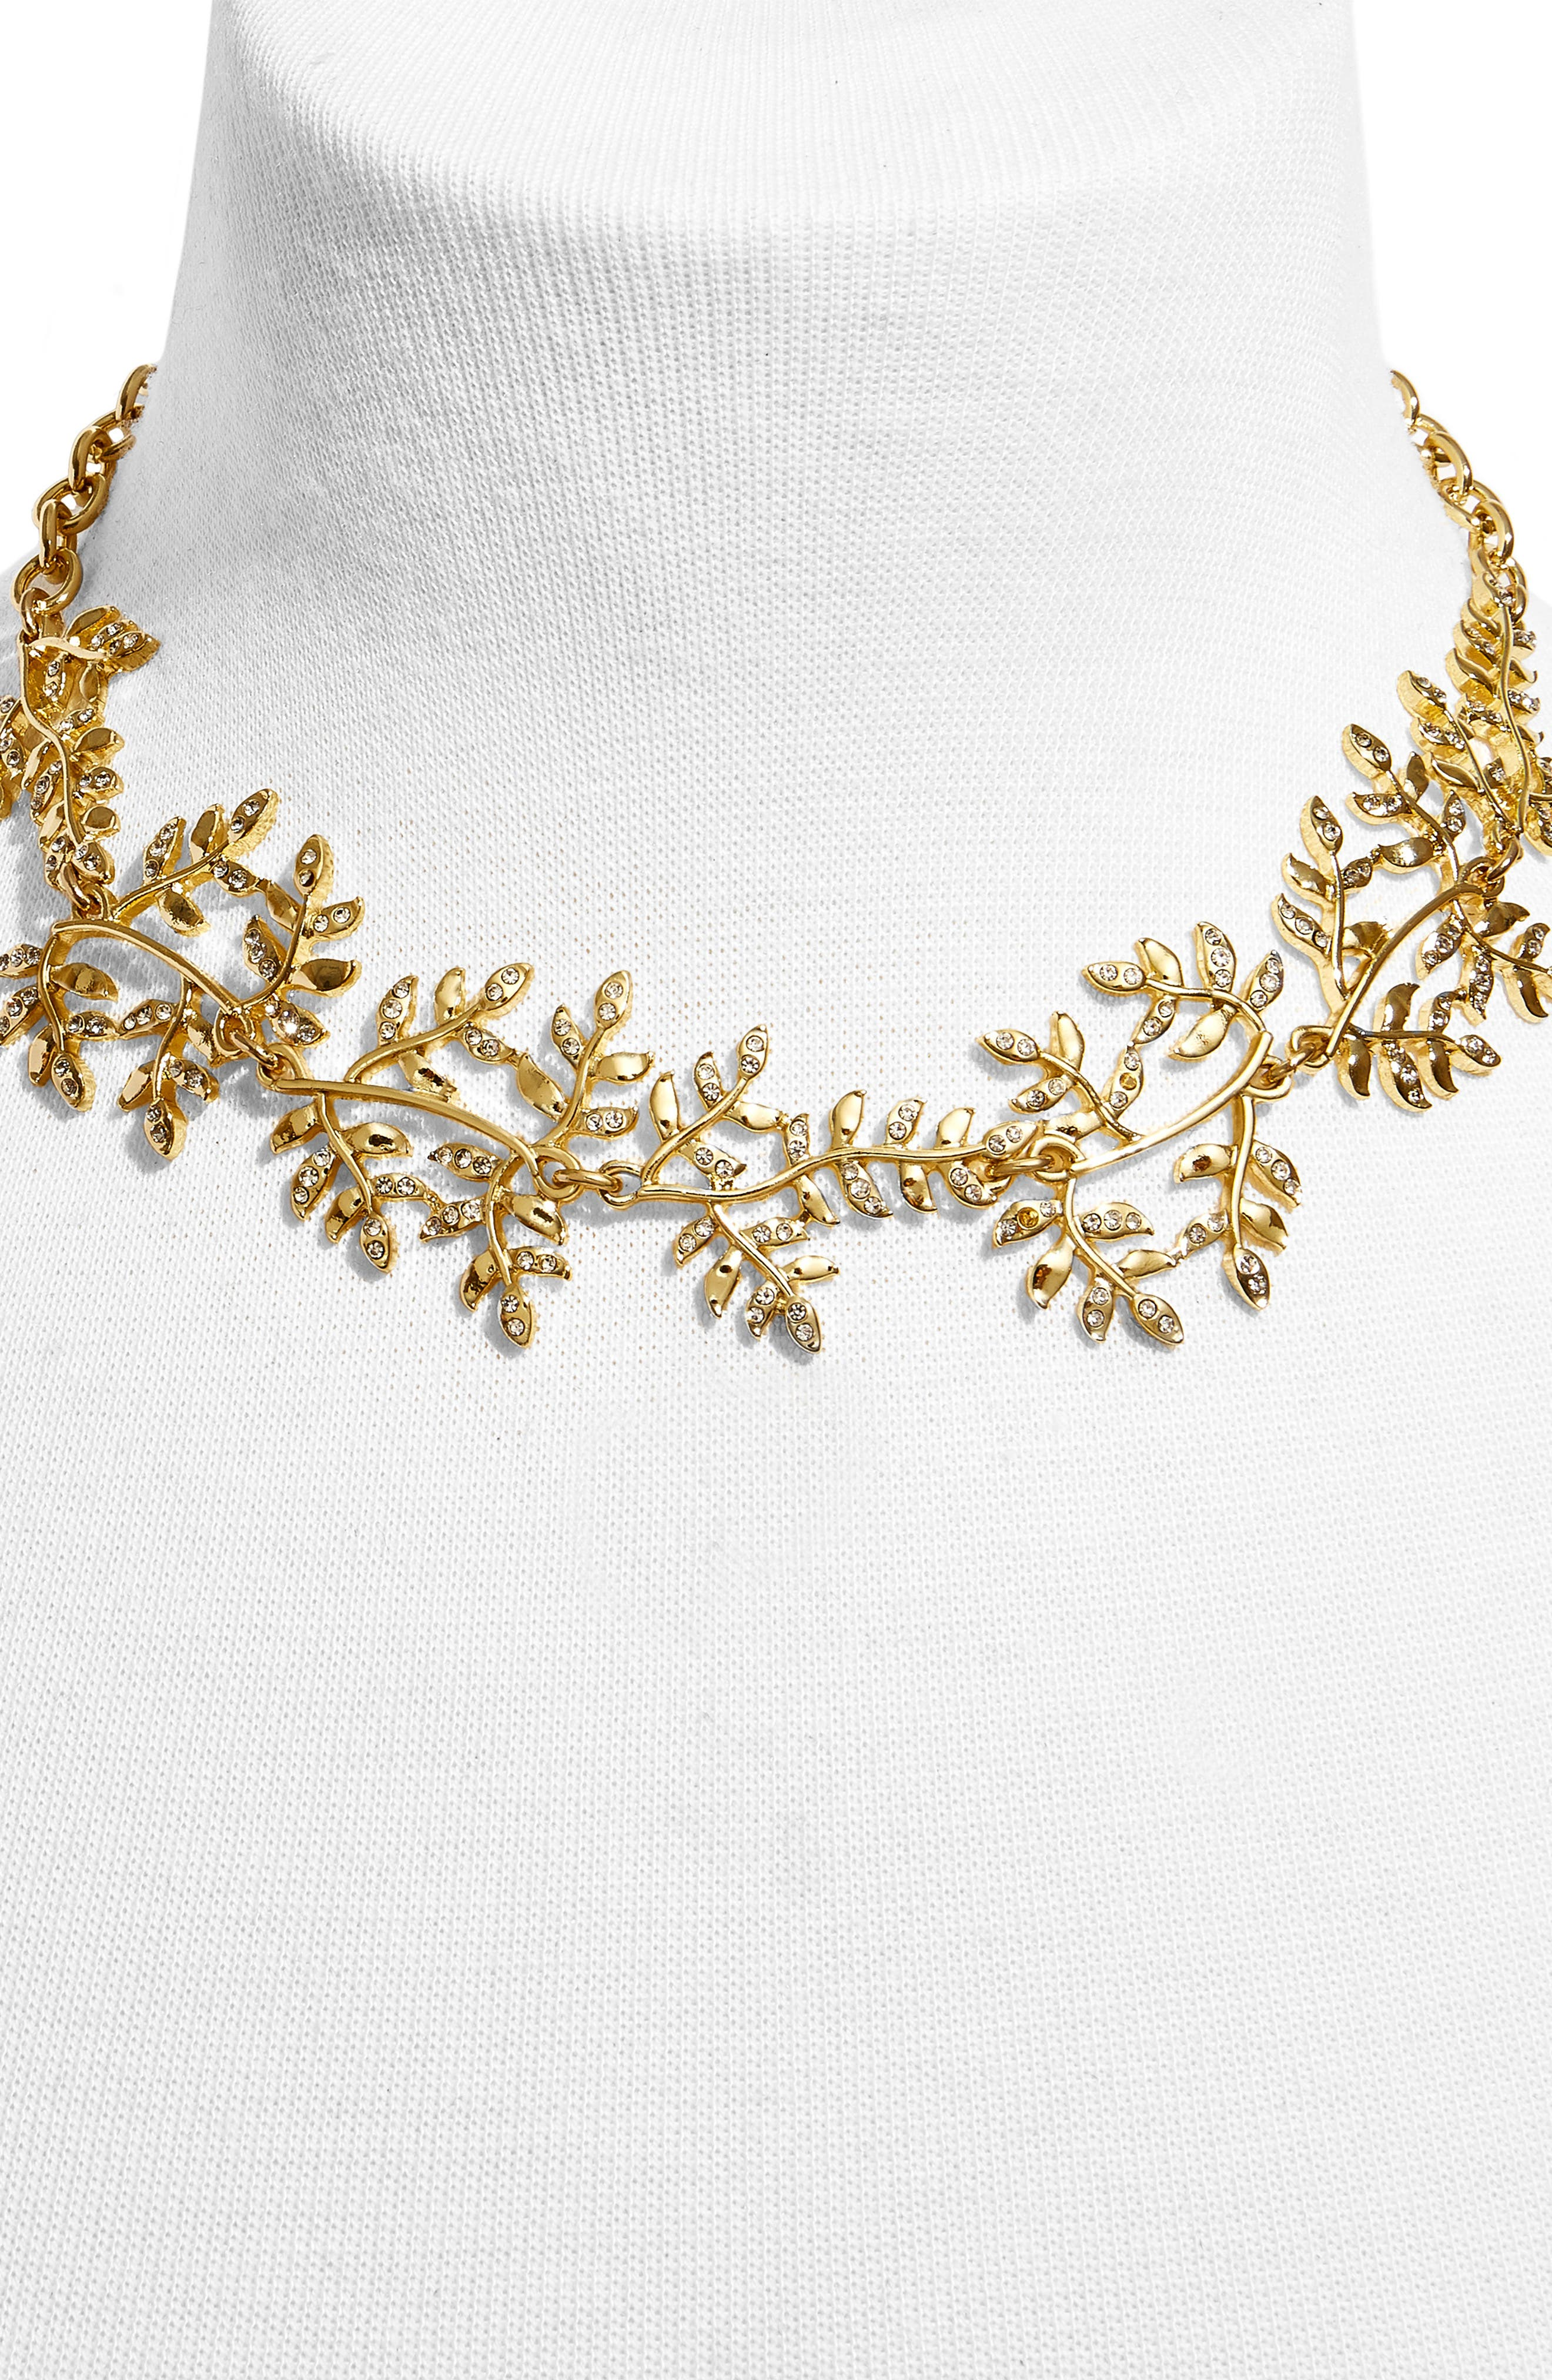 BAUBLEBAR, Lilith Collar Necklace, Alternate thumbnail 2, color, 710